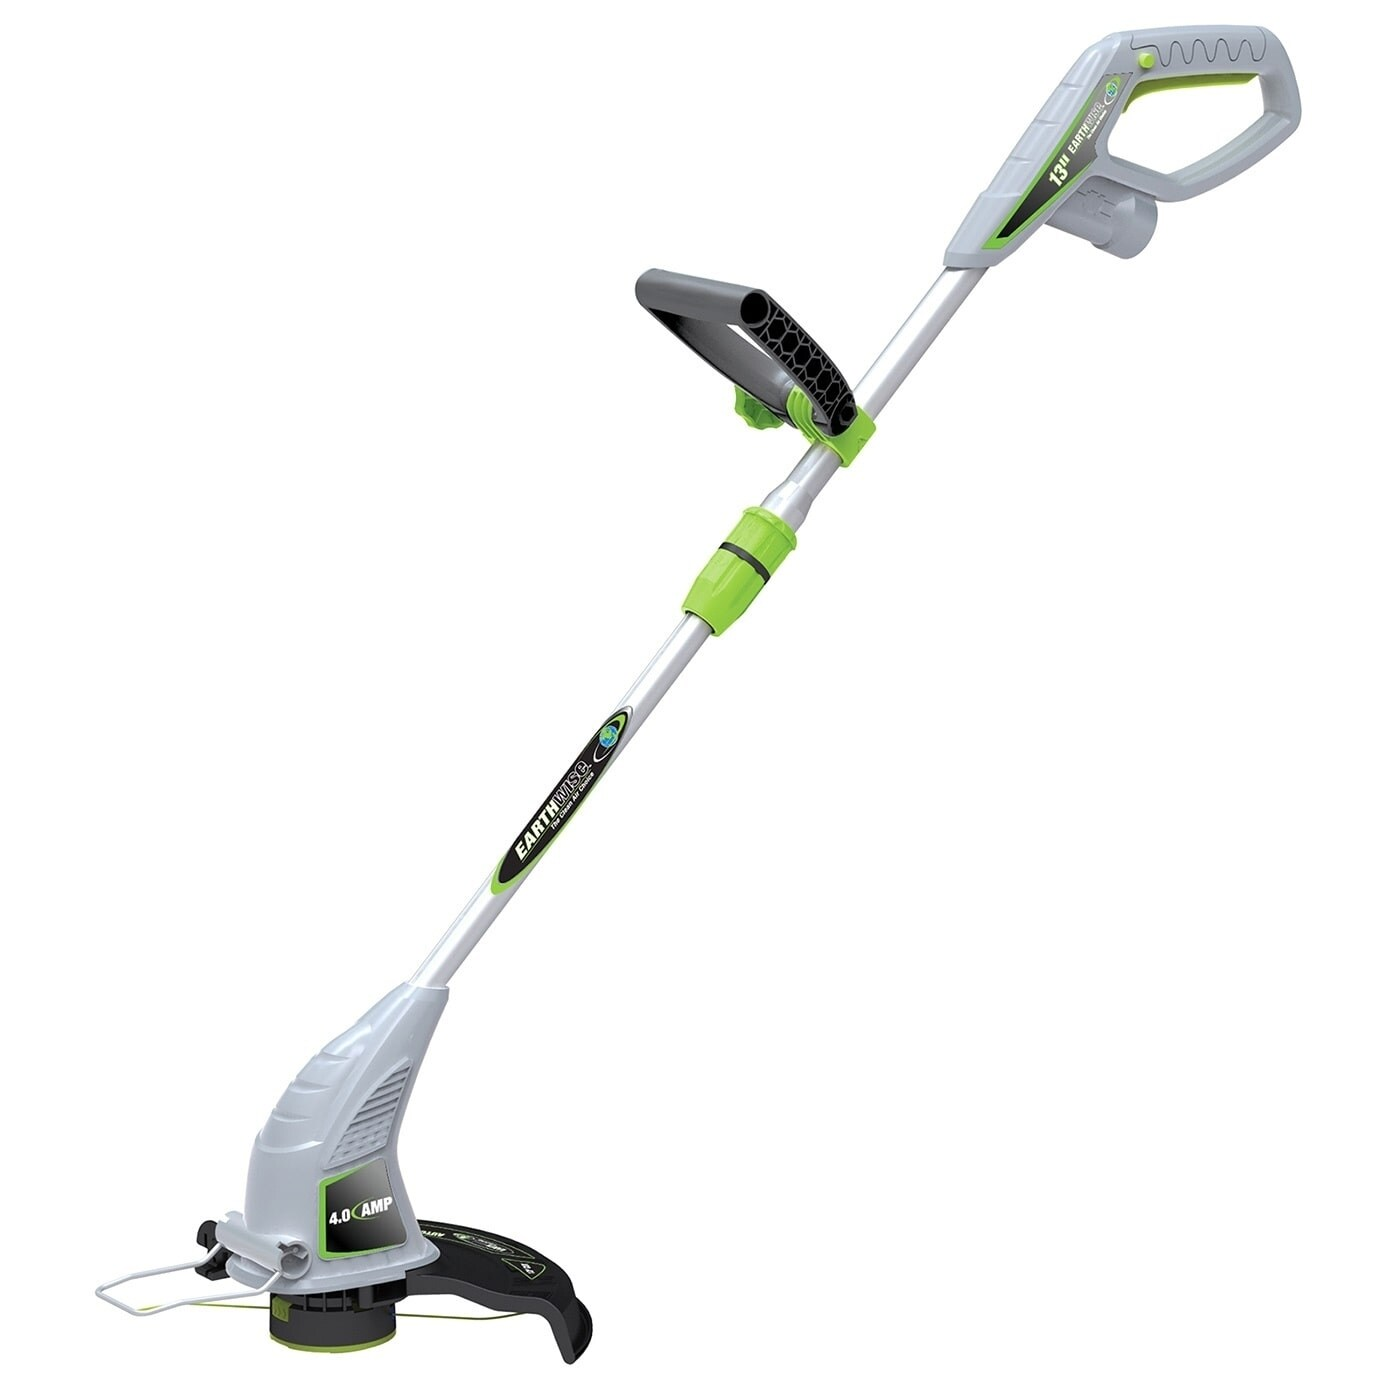 Earthrise Earthwise 13-inch Electric Grass String Trimmer...